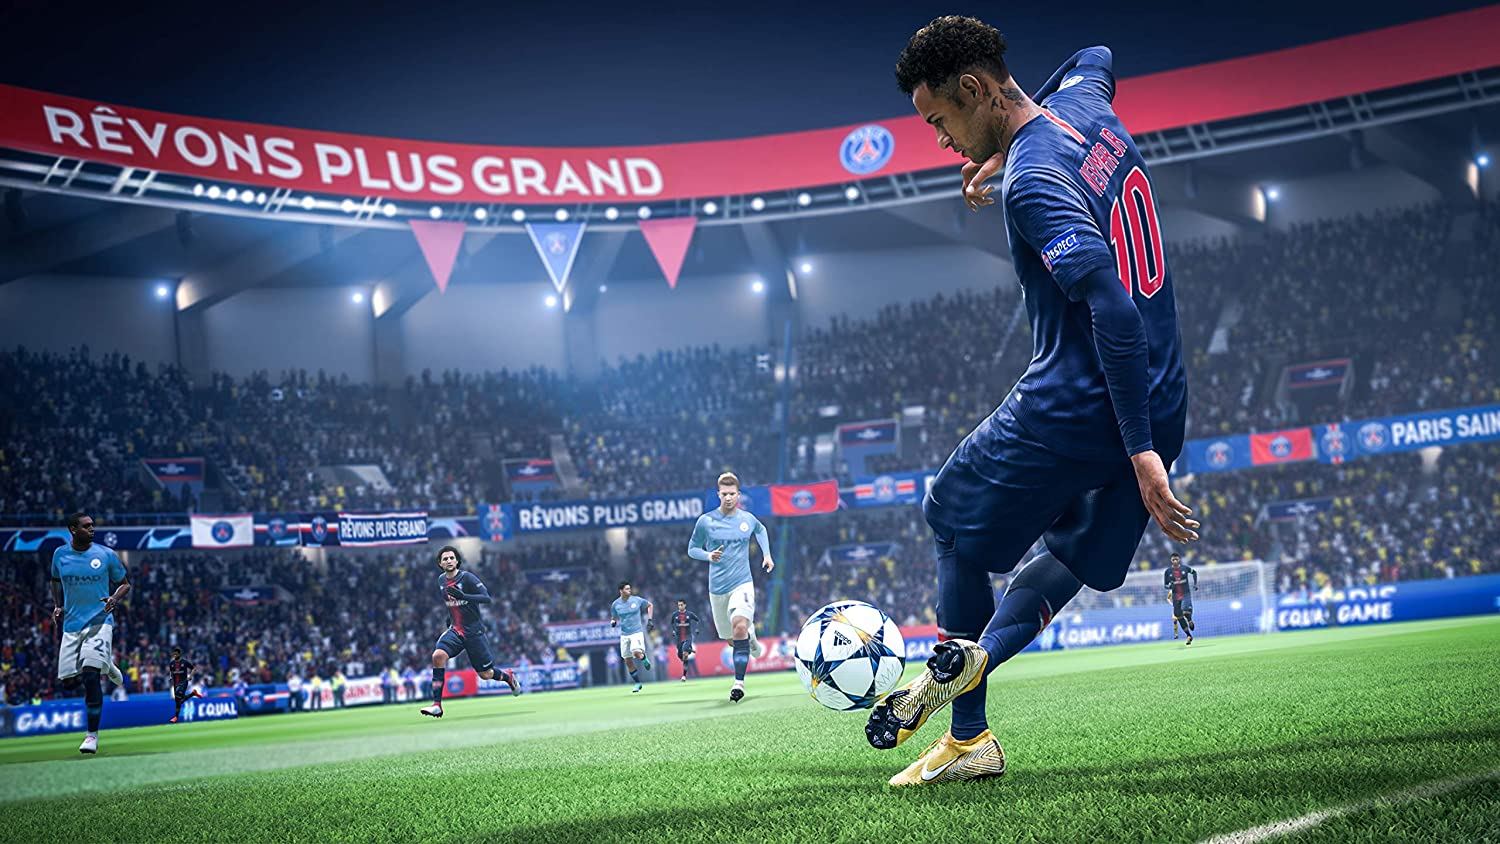 Amazon.com: FIFA 19 - Standard - PS4 [Digital Code]: Video Games